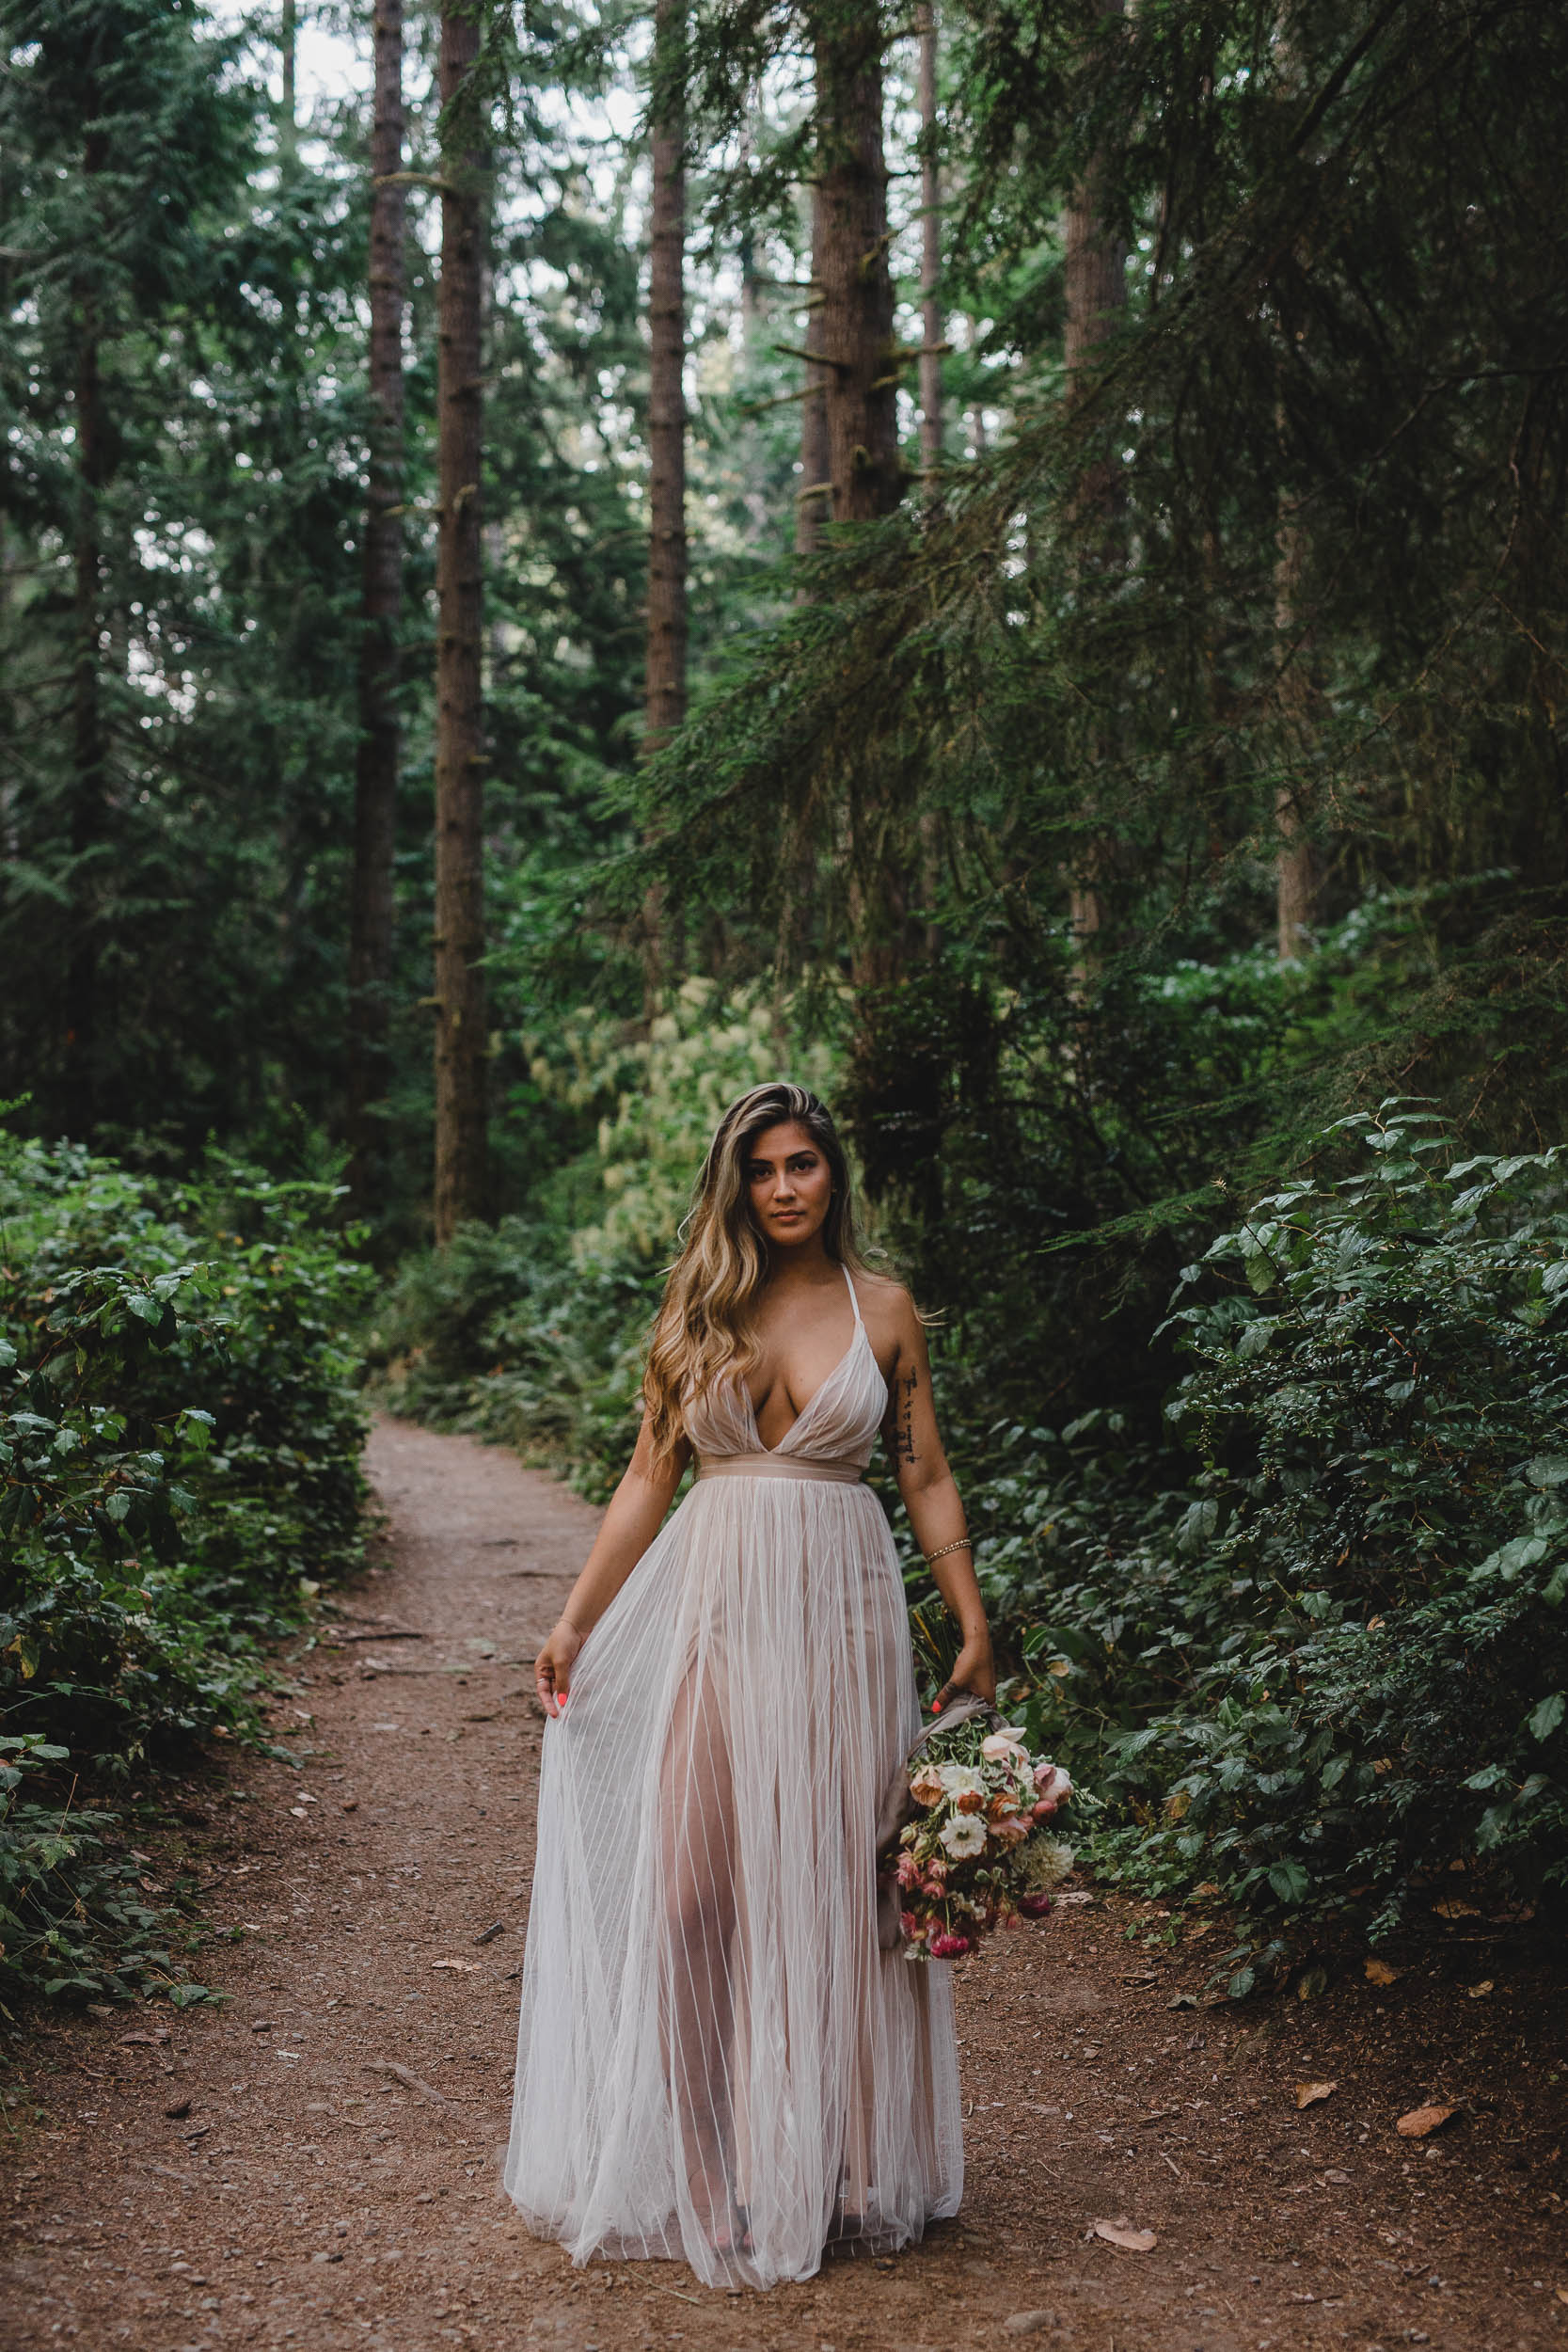 Bainbridge-Island-Elopement-KyleLovesTori-26.jpg